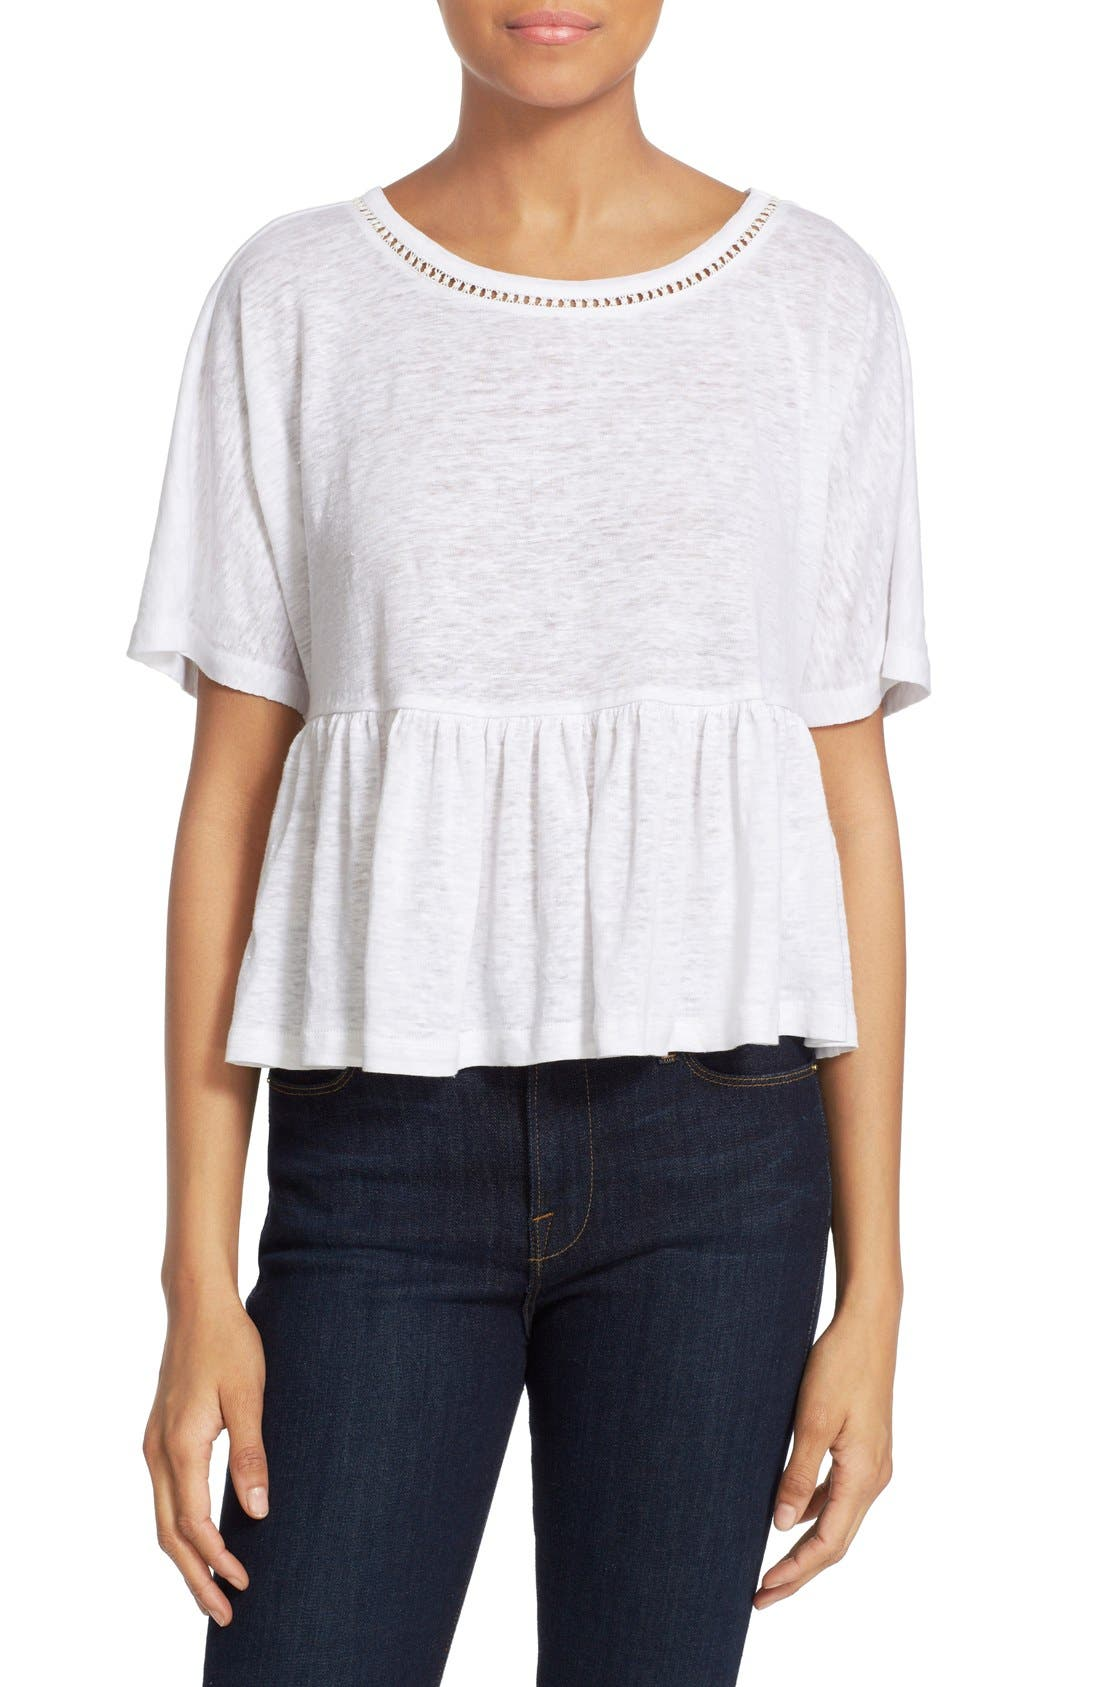 Alternate Image 1 Selected - Rebecca Taylor Ruffle Linen Jersey Tee